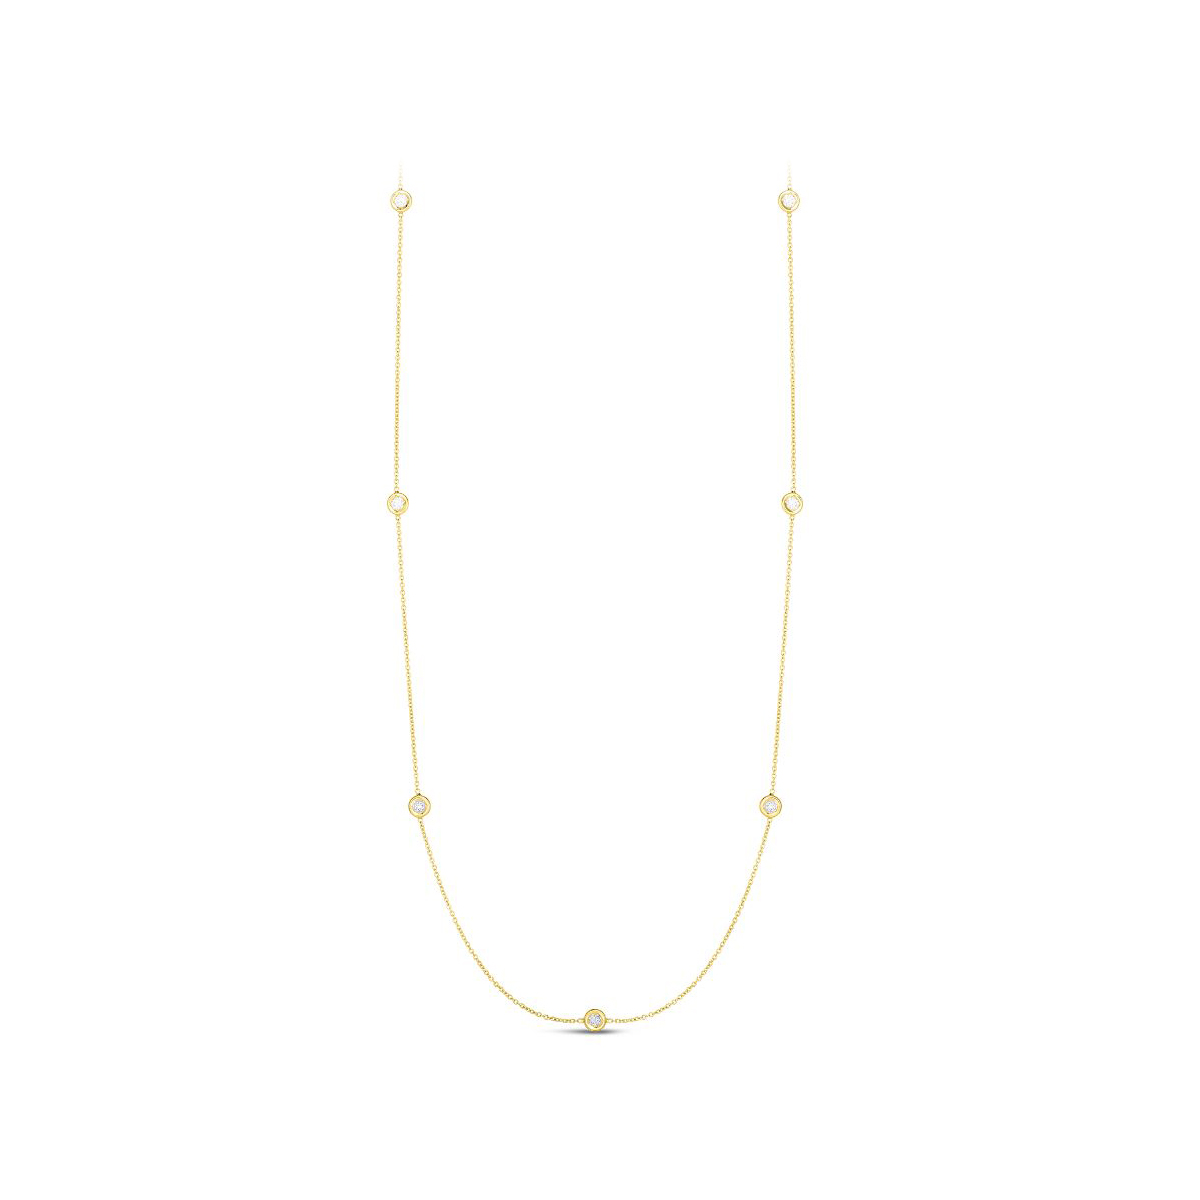 Roberto Coin 18 Karat Yellow Gold Necklace with Seven Diamond Stations